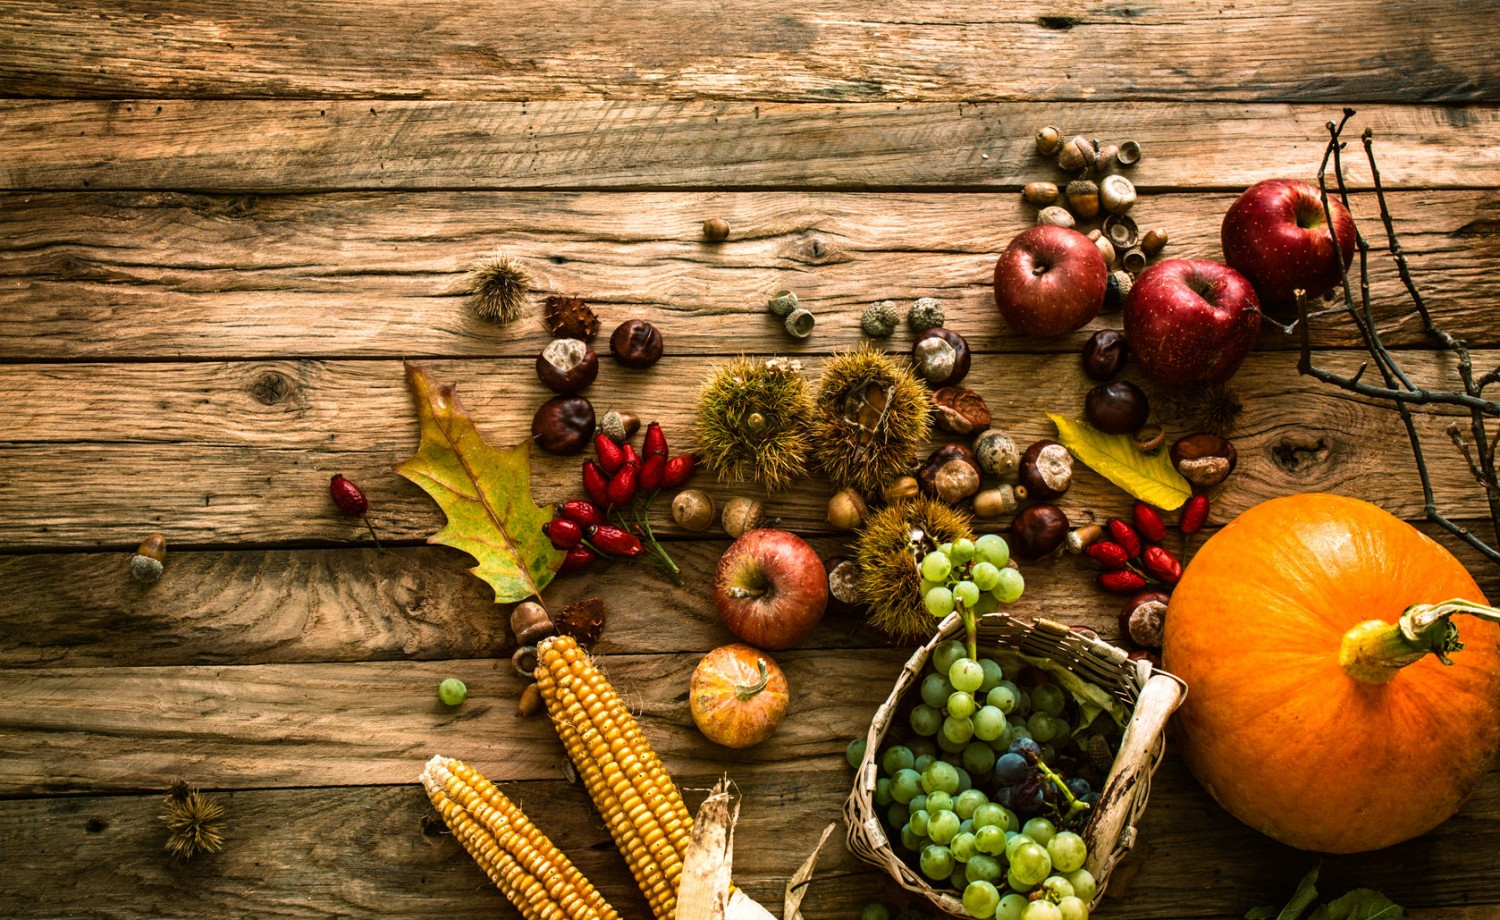 44891096 - autumn fruit background. autumn thanksgiving seasonal fruit. nature background